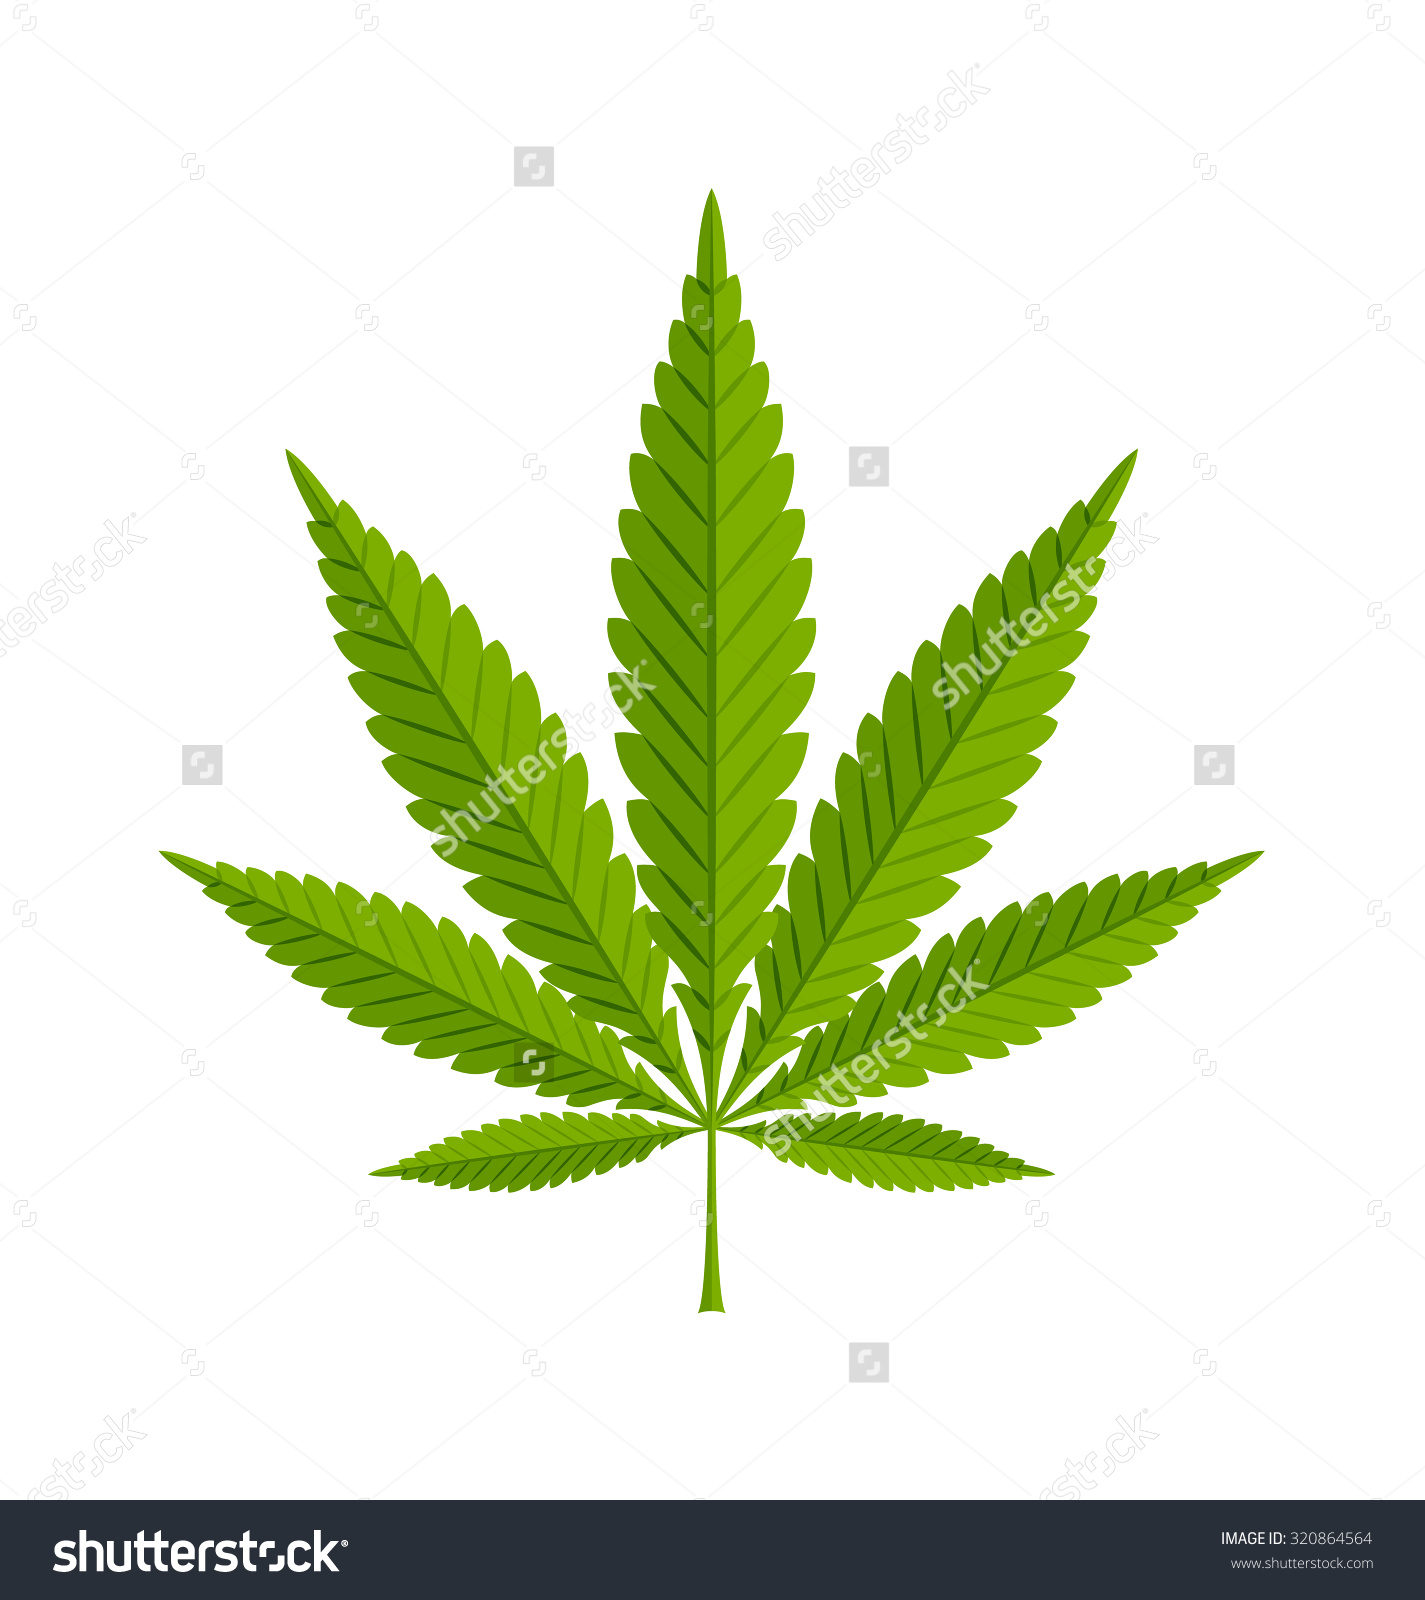 Marijuana Hemp Cannabis Sativa Cannabis Indica Stock Vector.